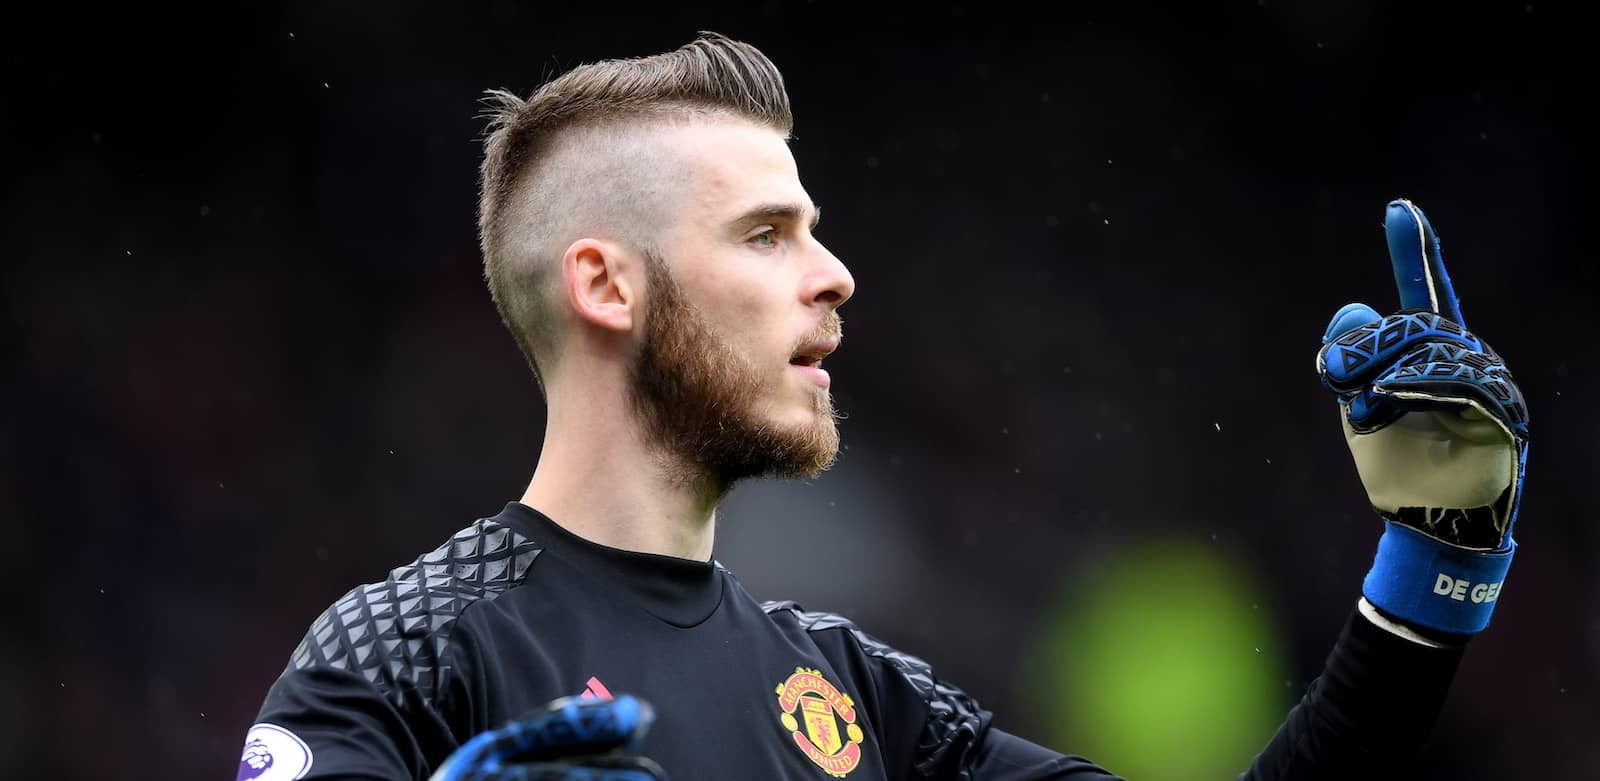 Mourinho explains when David de Gea will play for Manchester United